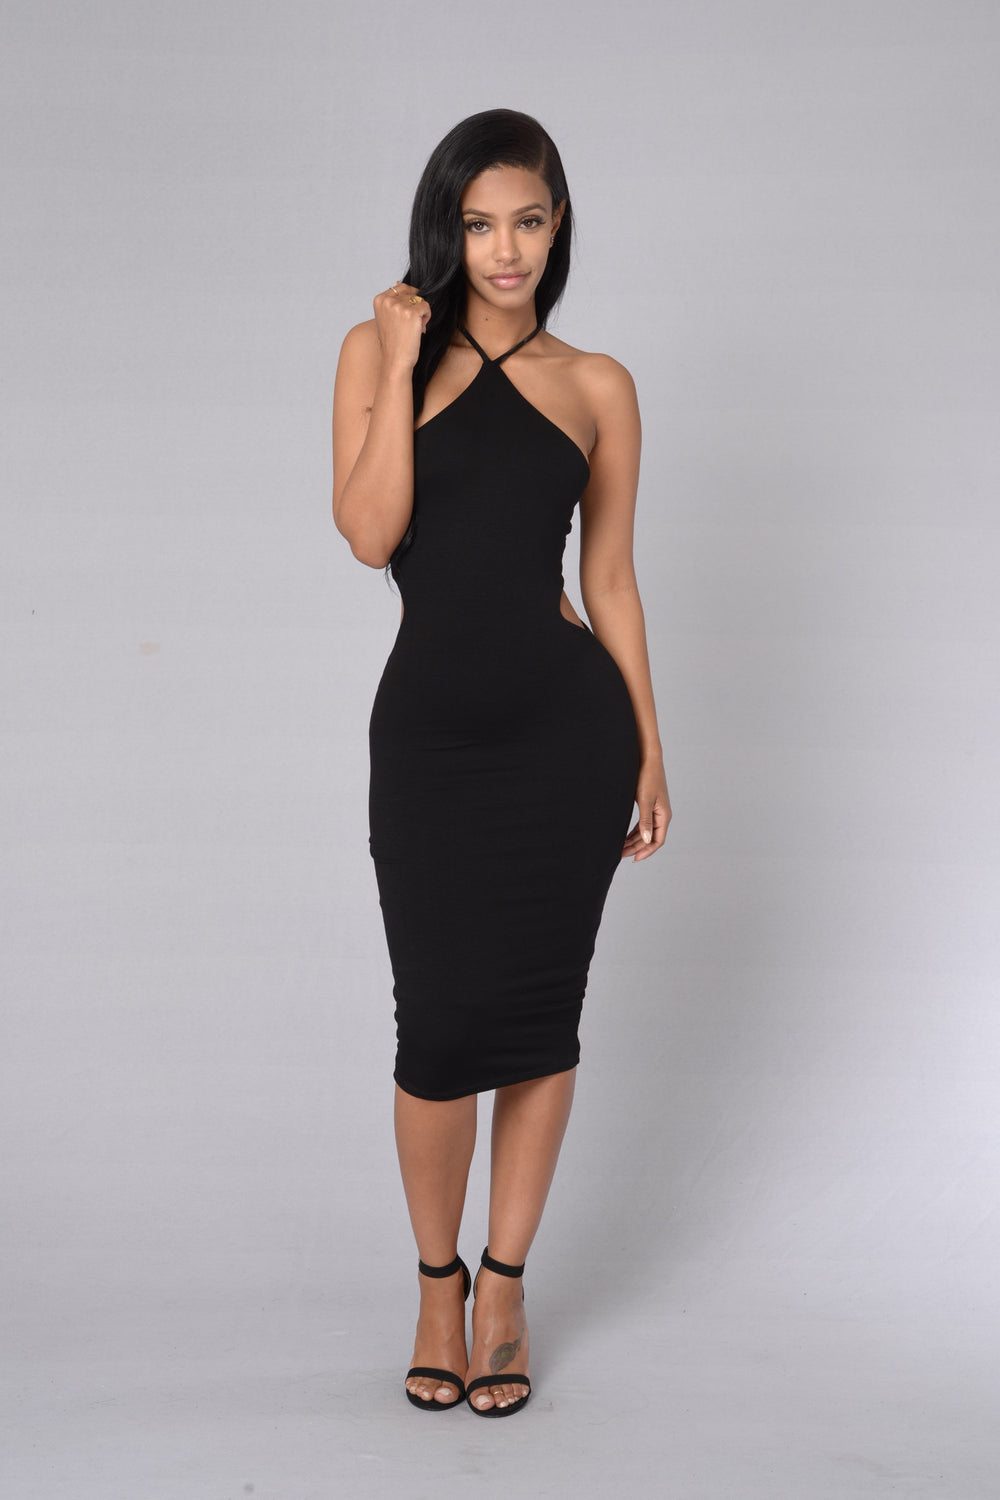 At First Sight Dress - Black